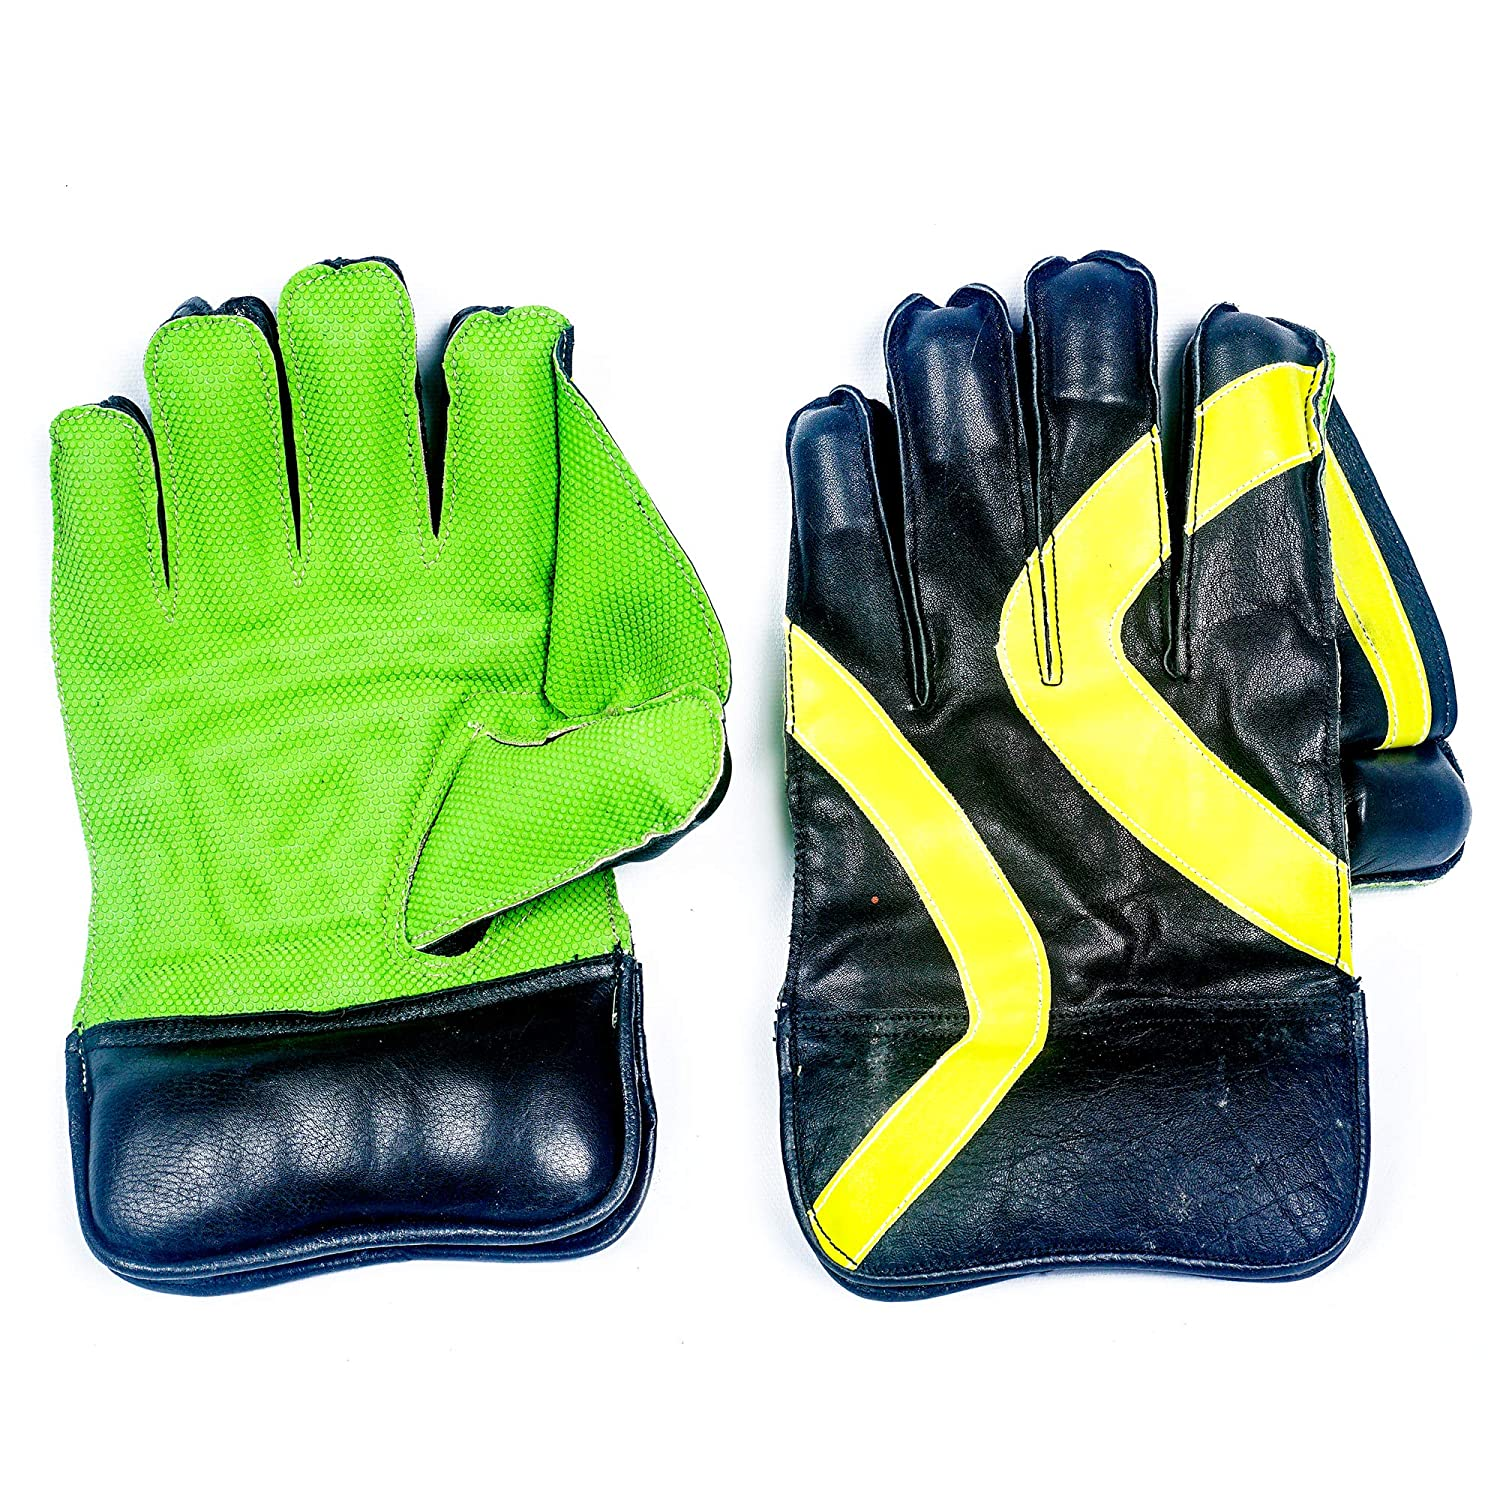 Wicket Keeping Gloves - Green / Black